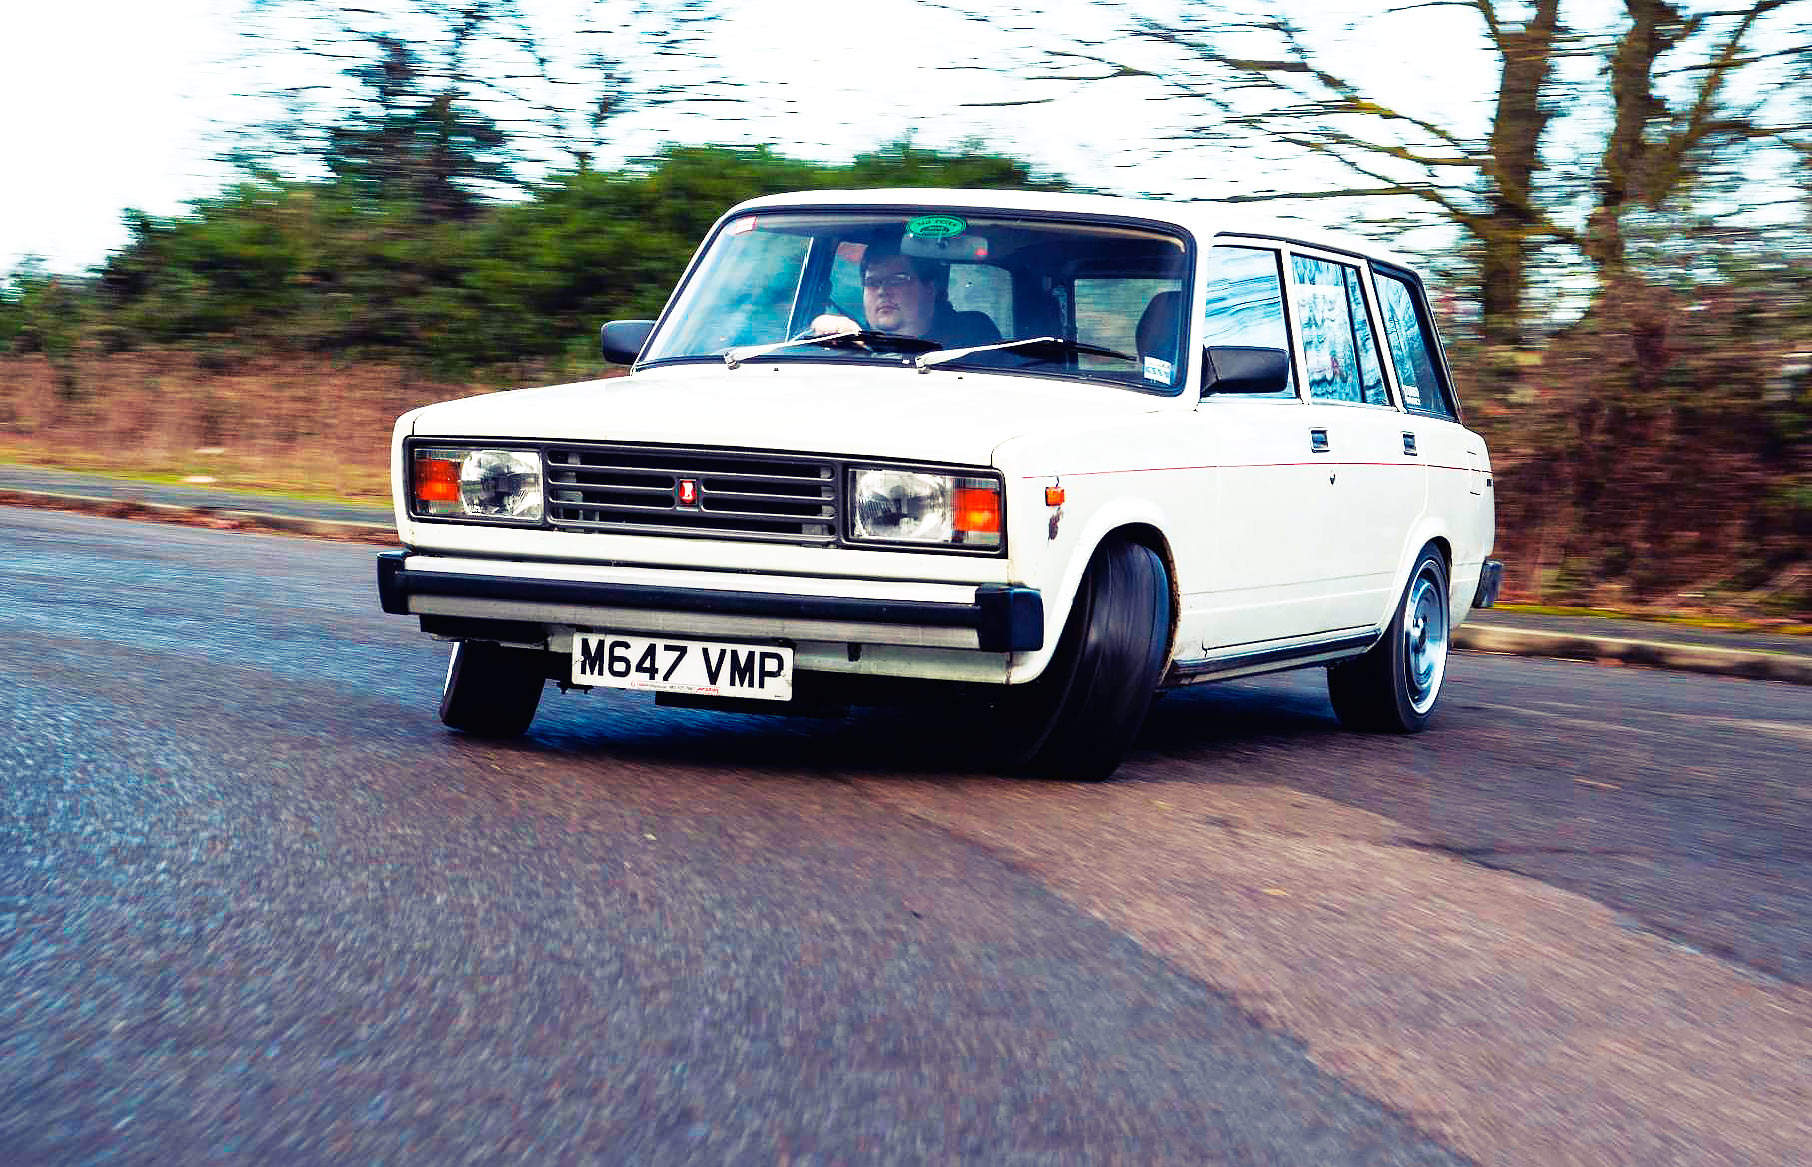 My VAZ quickly heats up while driving, what reason do not know 36